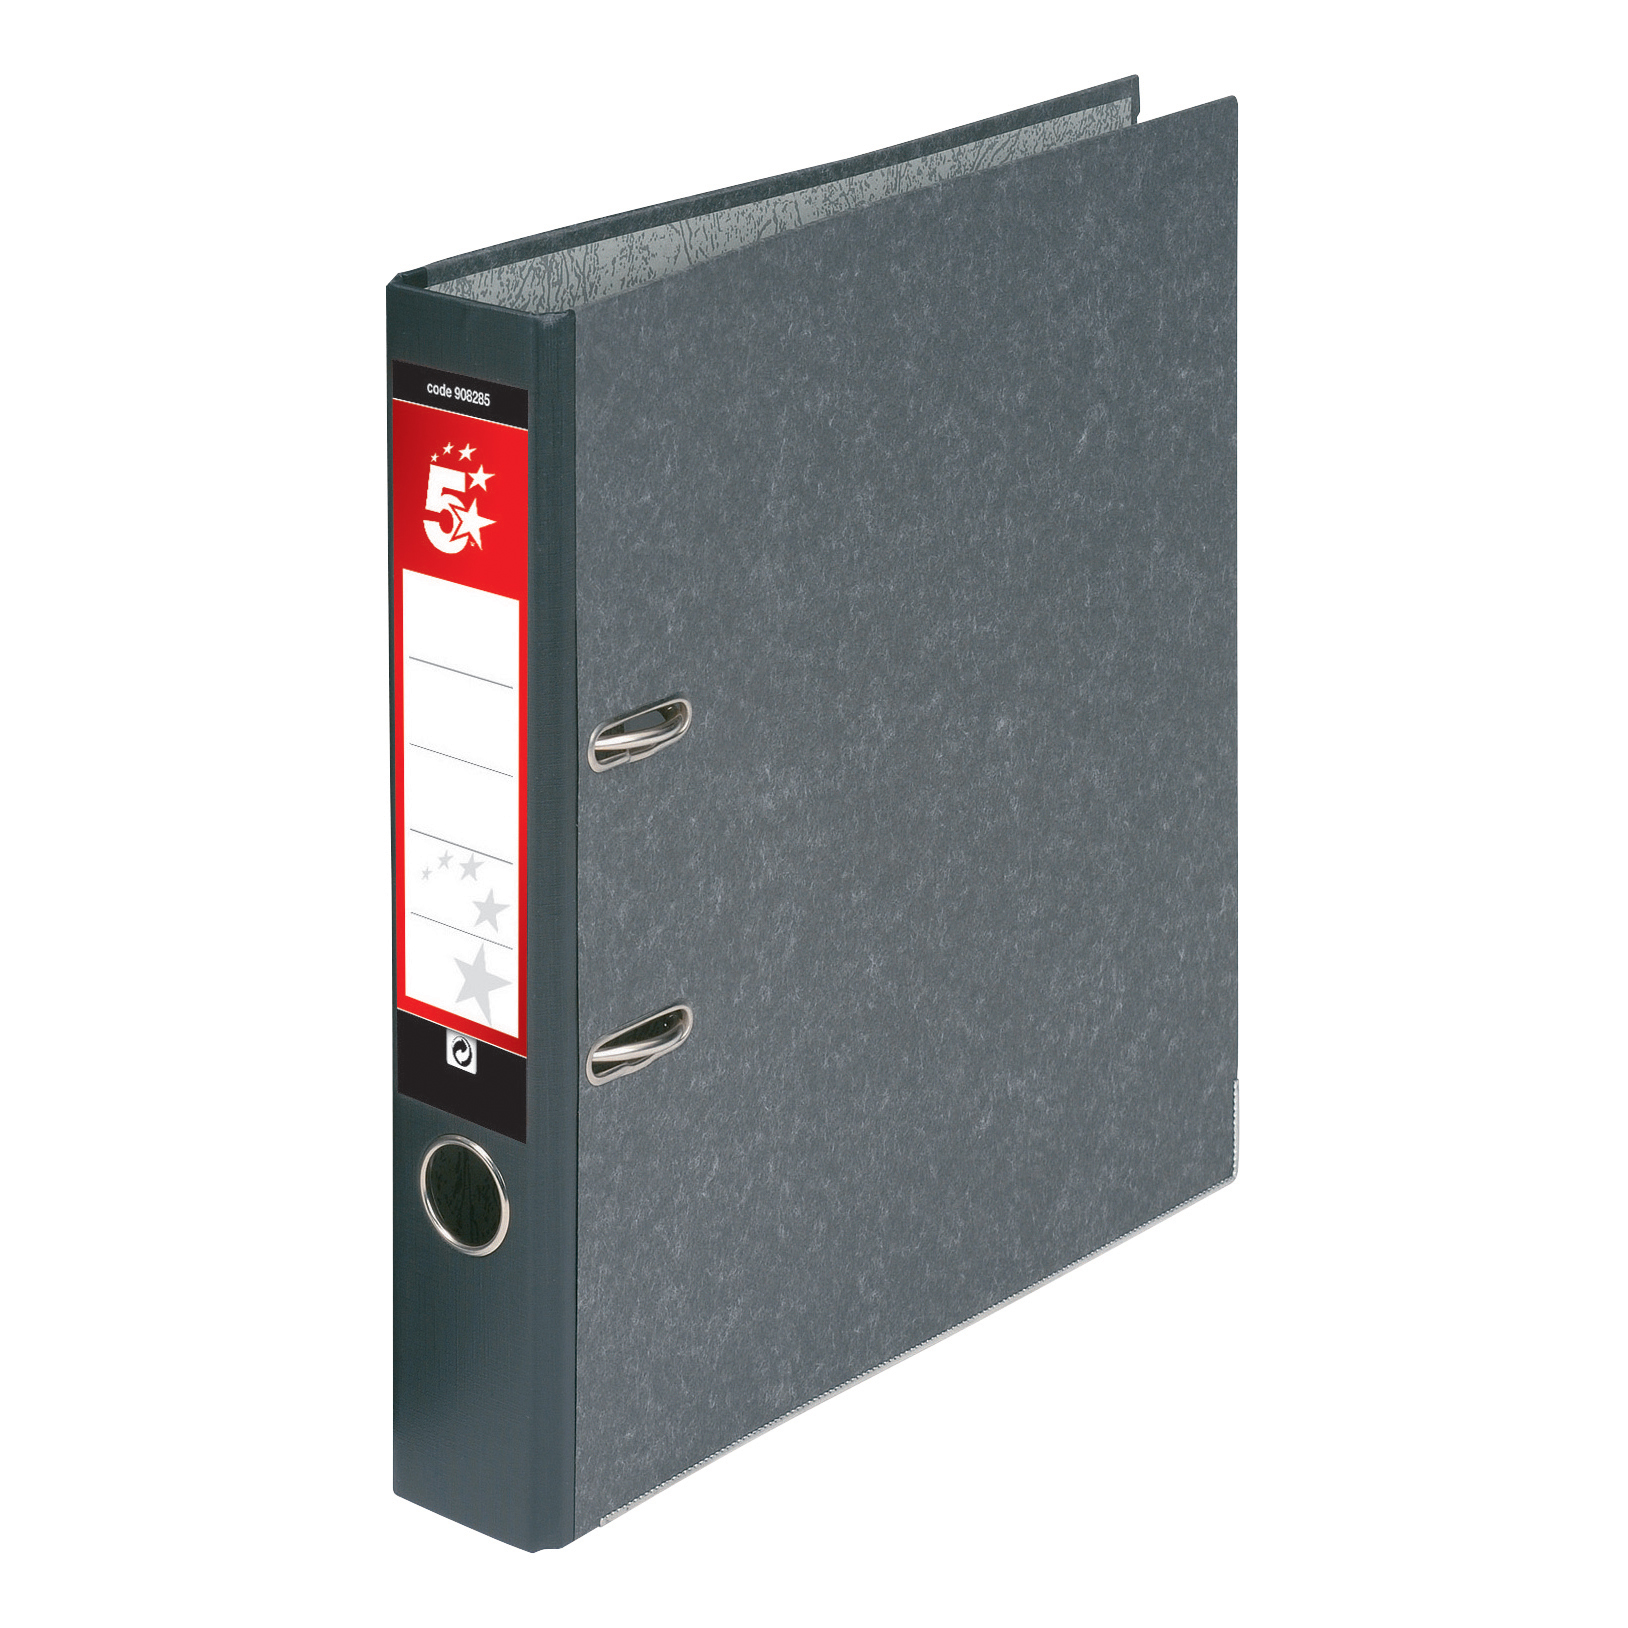 Lever Arch Files 5 Star Office Mini Lever Arch File 50mm Spine Foolscap Cloudy Grey Pack 10